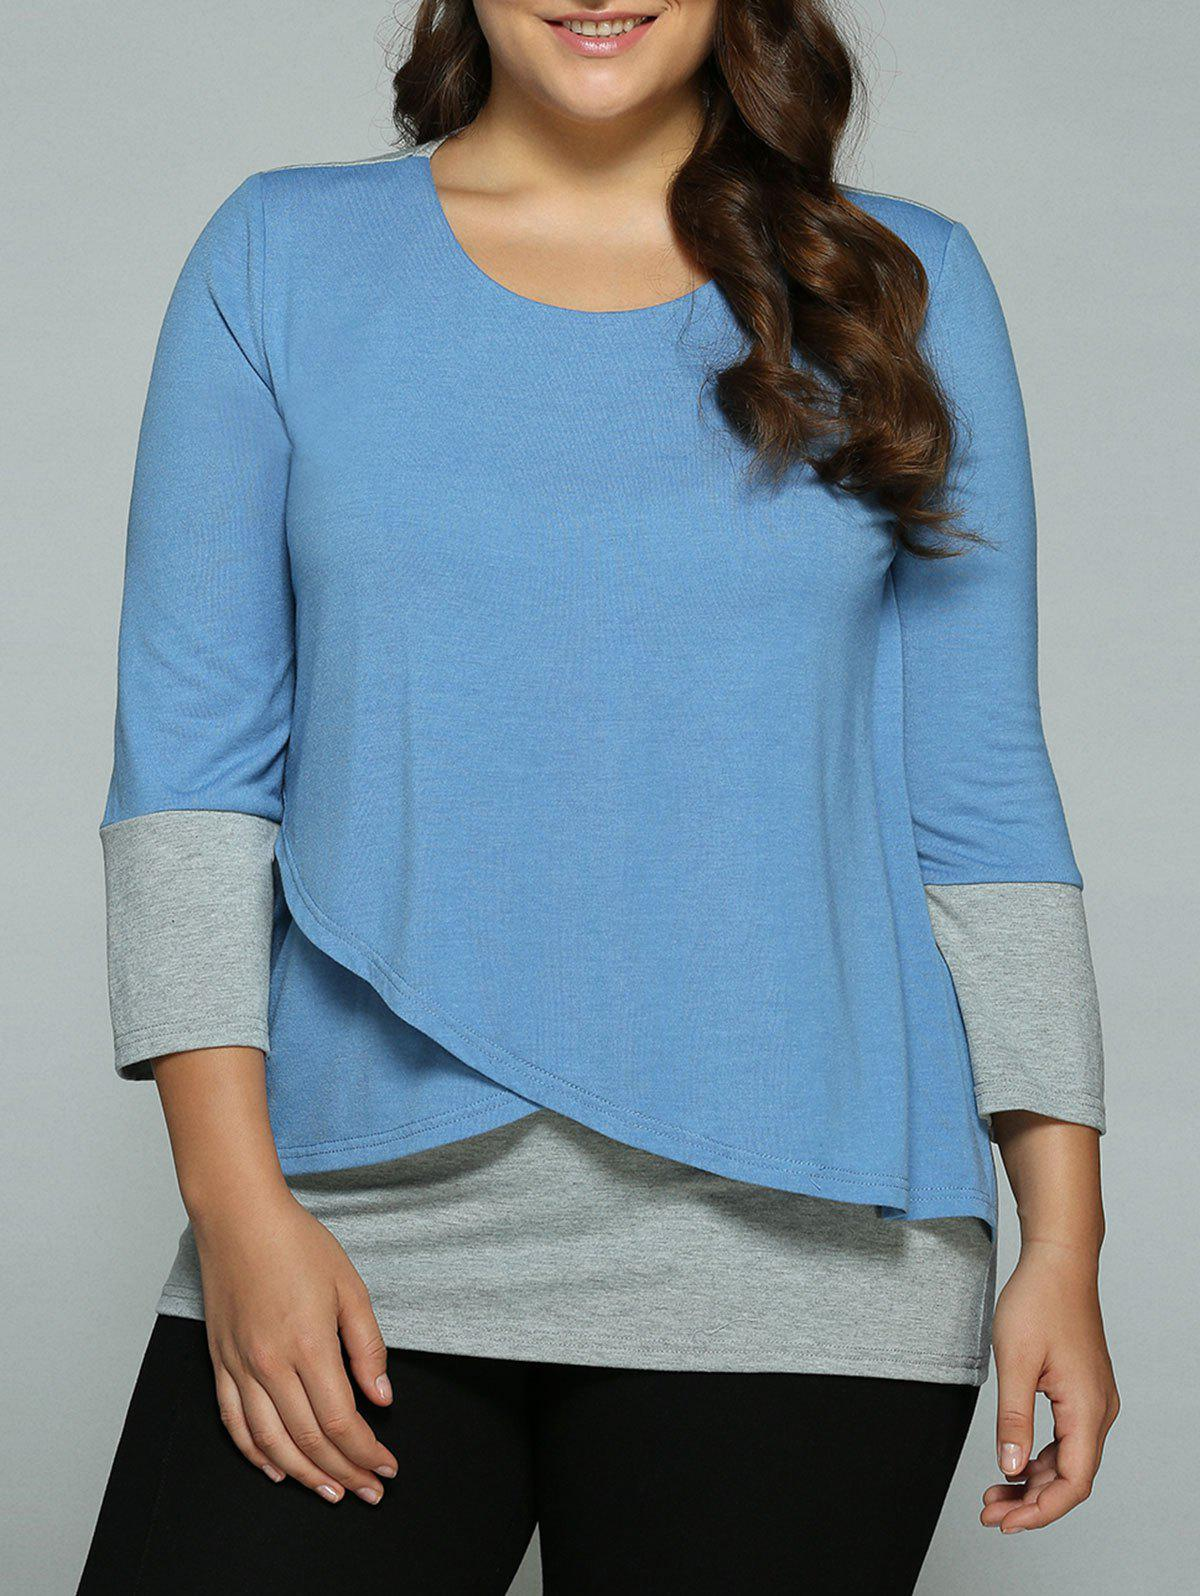 Plus Size Overlay Spliced BlouseWomen<br><br><br>Size: 4XL<br>Color: BLUE+GRAY